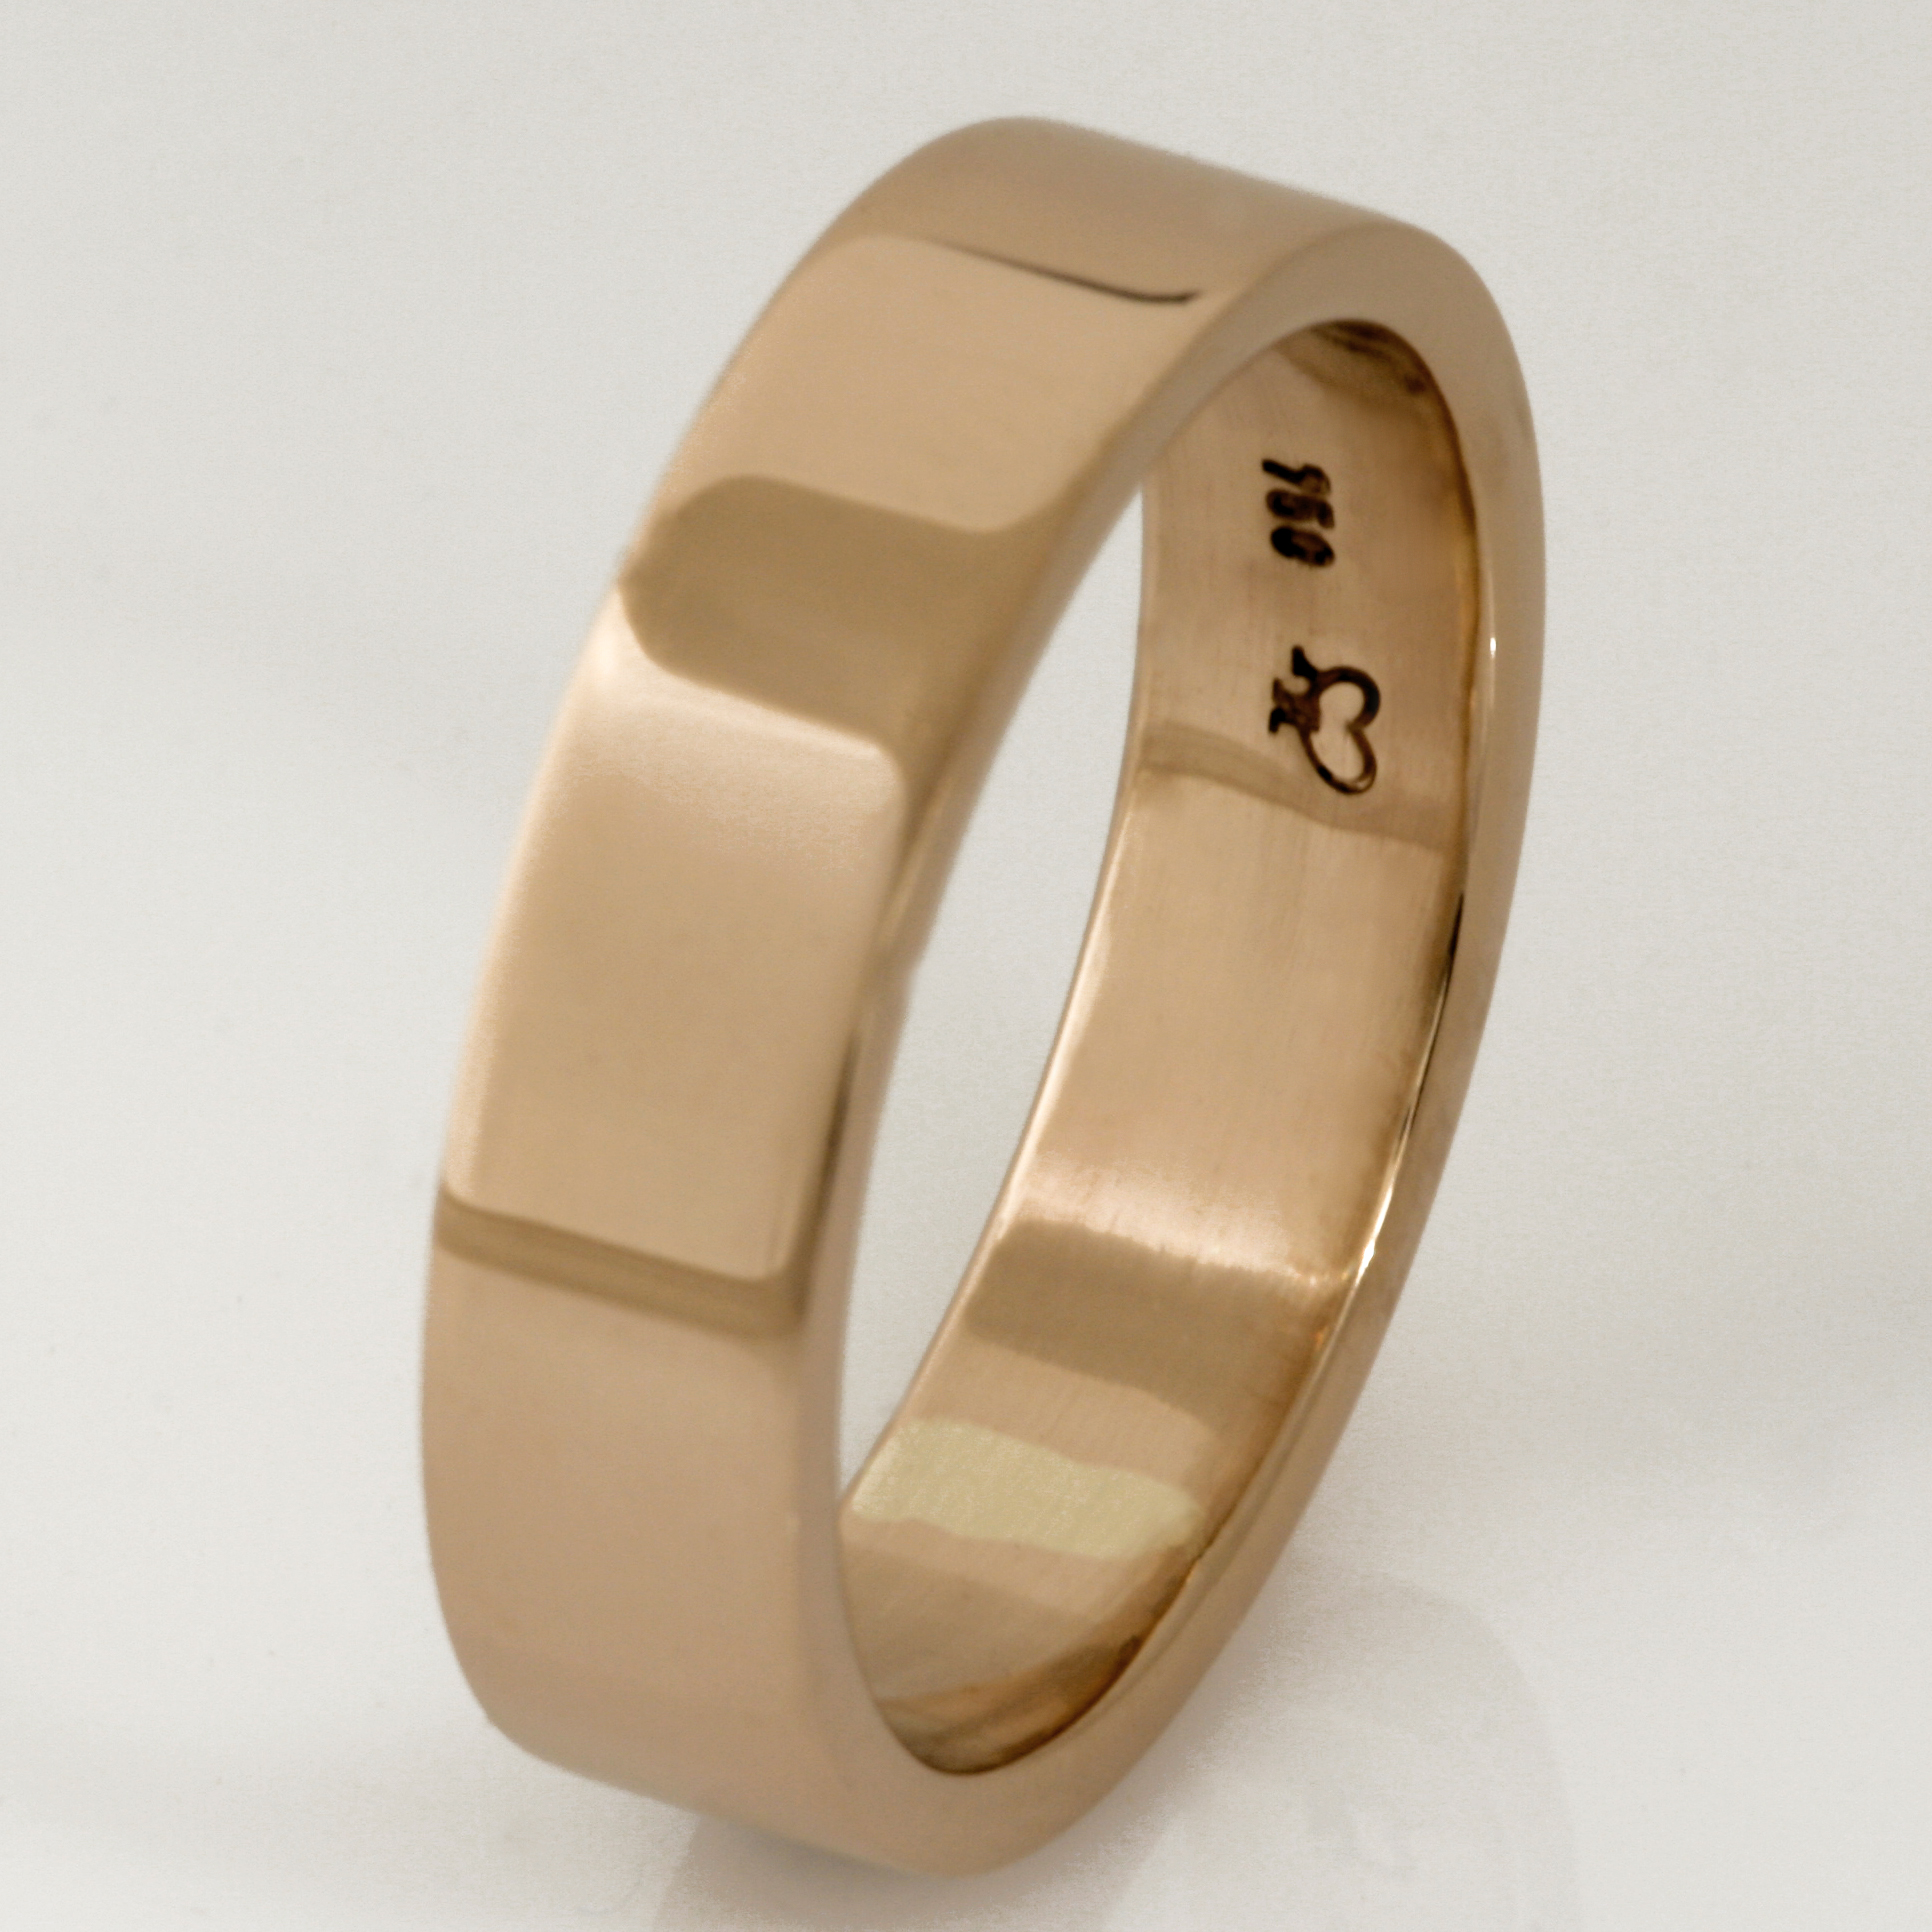 Handmade 18ct peach gold wedding ring